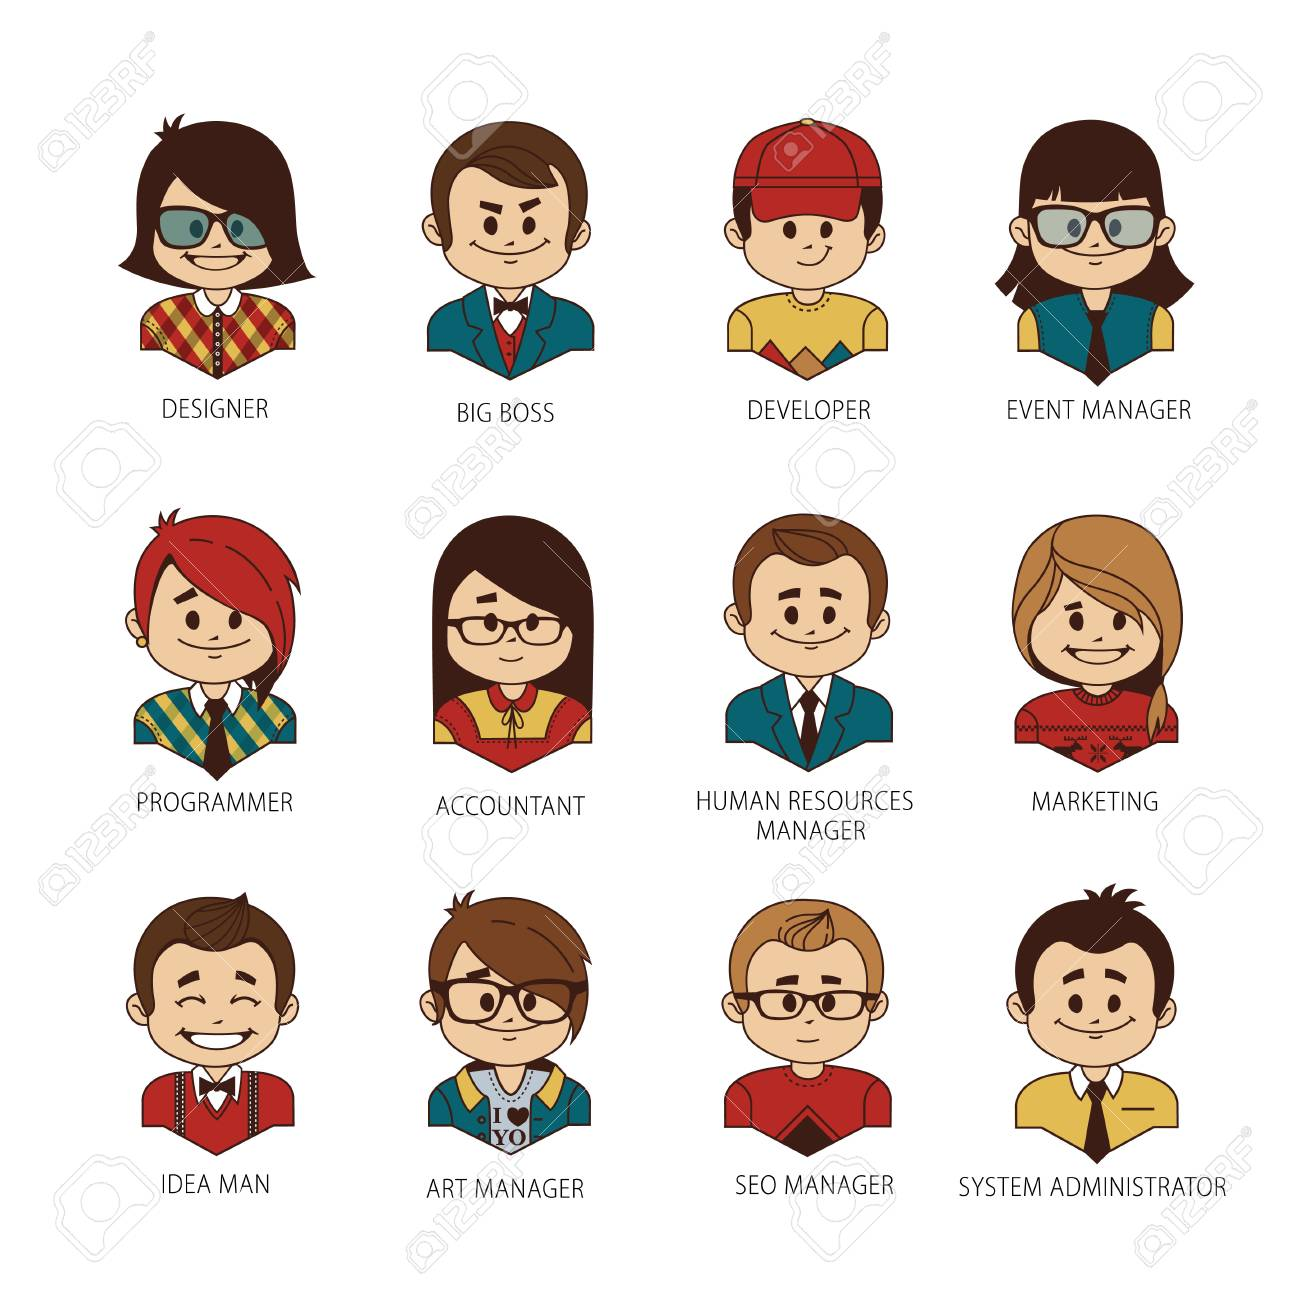 Set Of Round People Icons Your Office Team. Collection Of Professions In IT  Company.